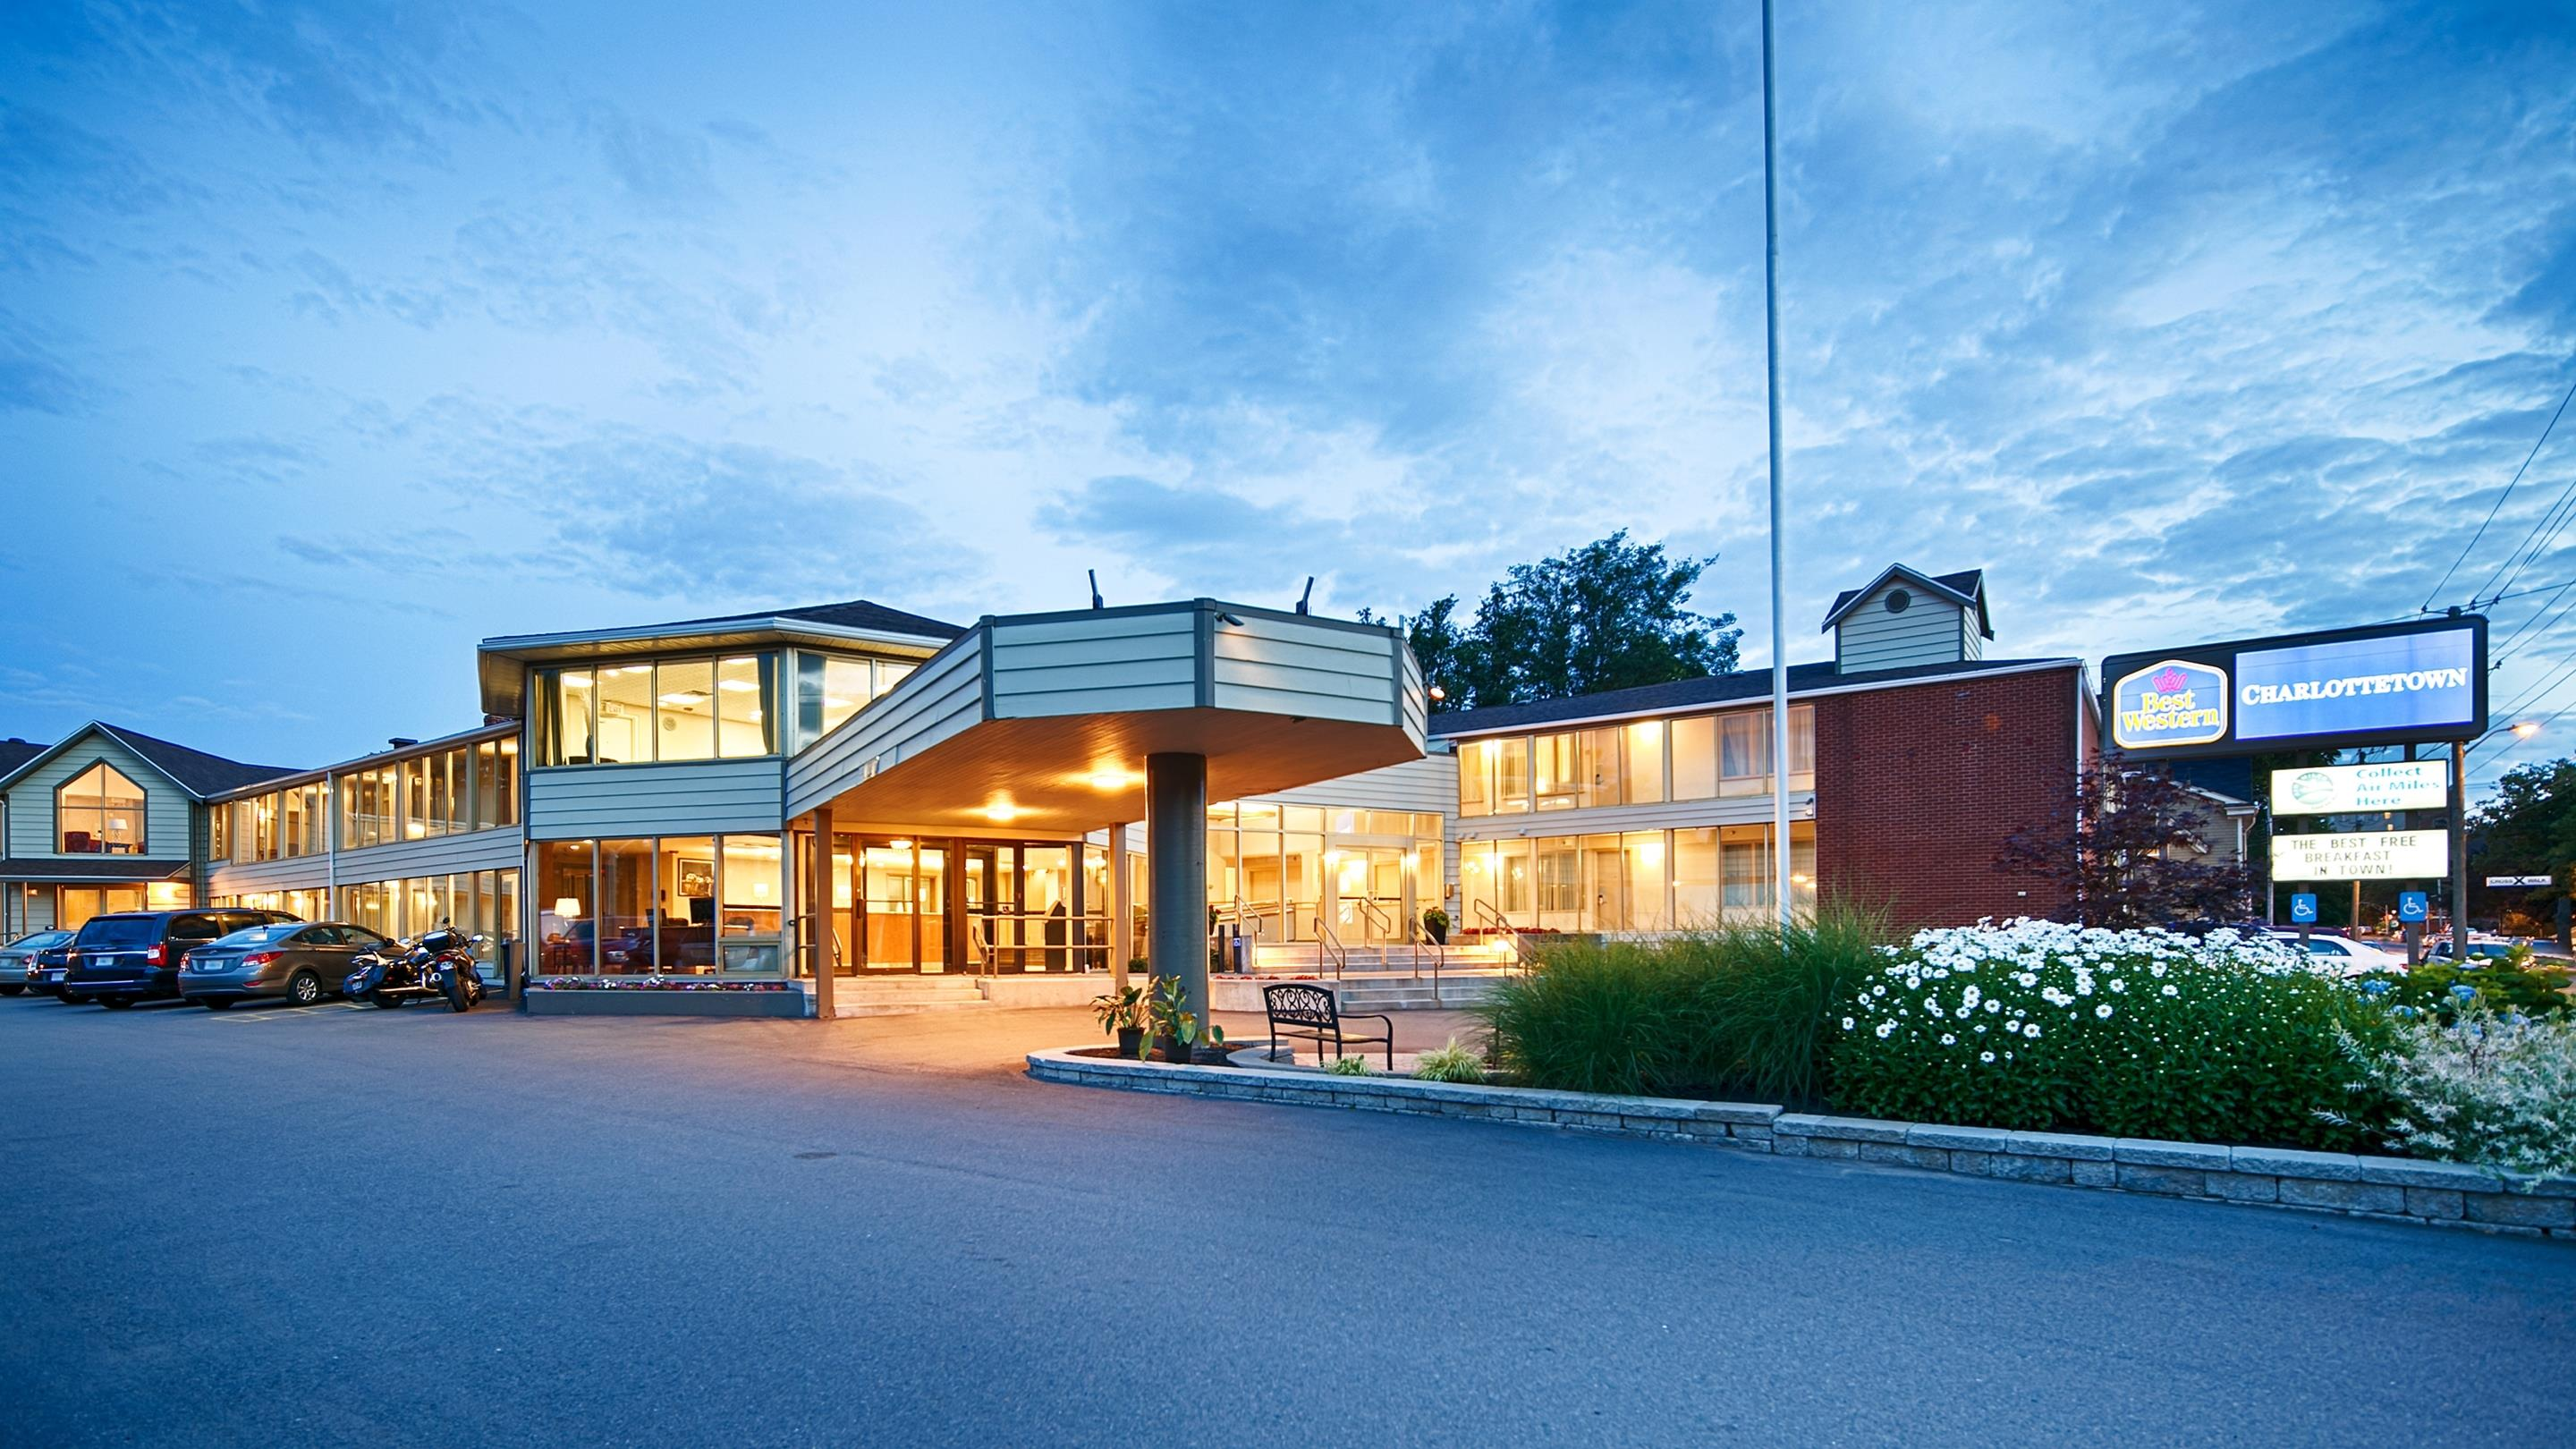 Charlottetown Inn & Conference Centre in Charlottetown: Hotel Exterior